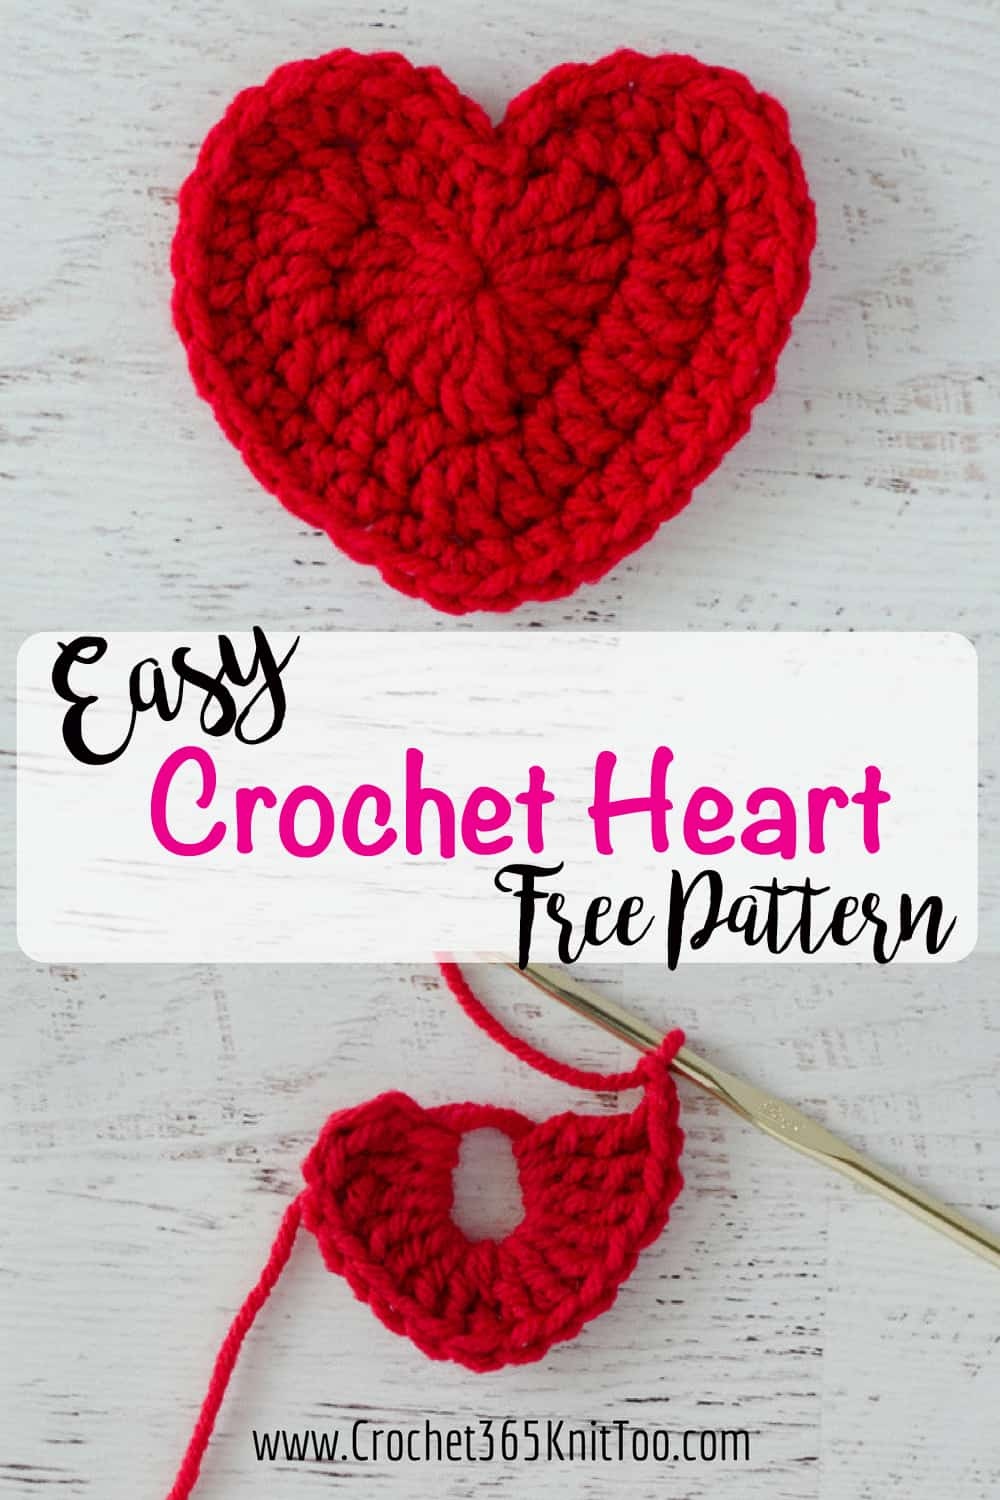 Crochet Heart Pattern - Crochet 365 Knit Too